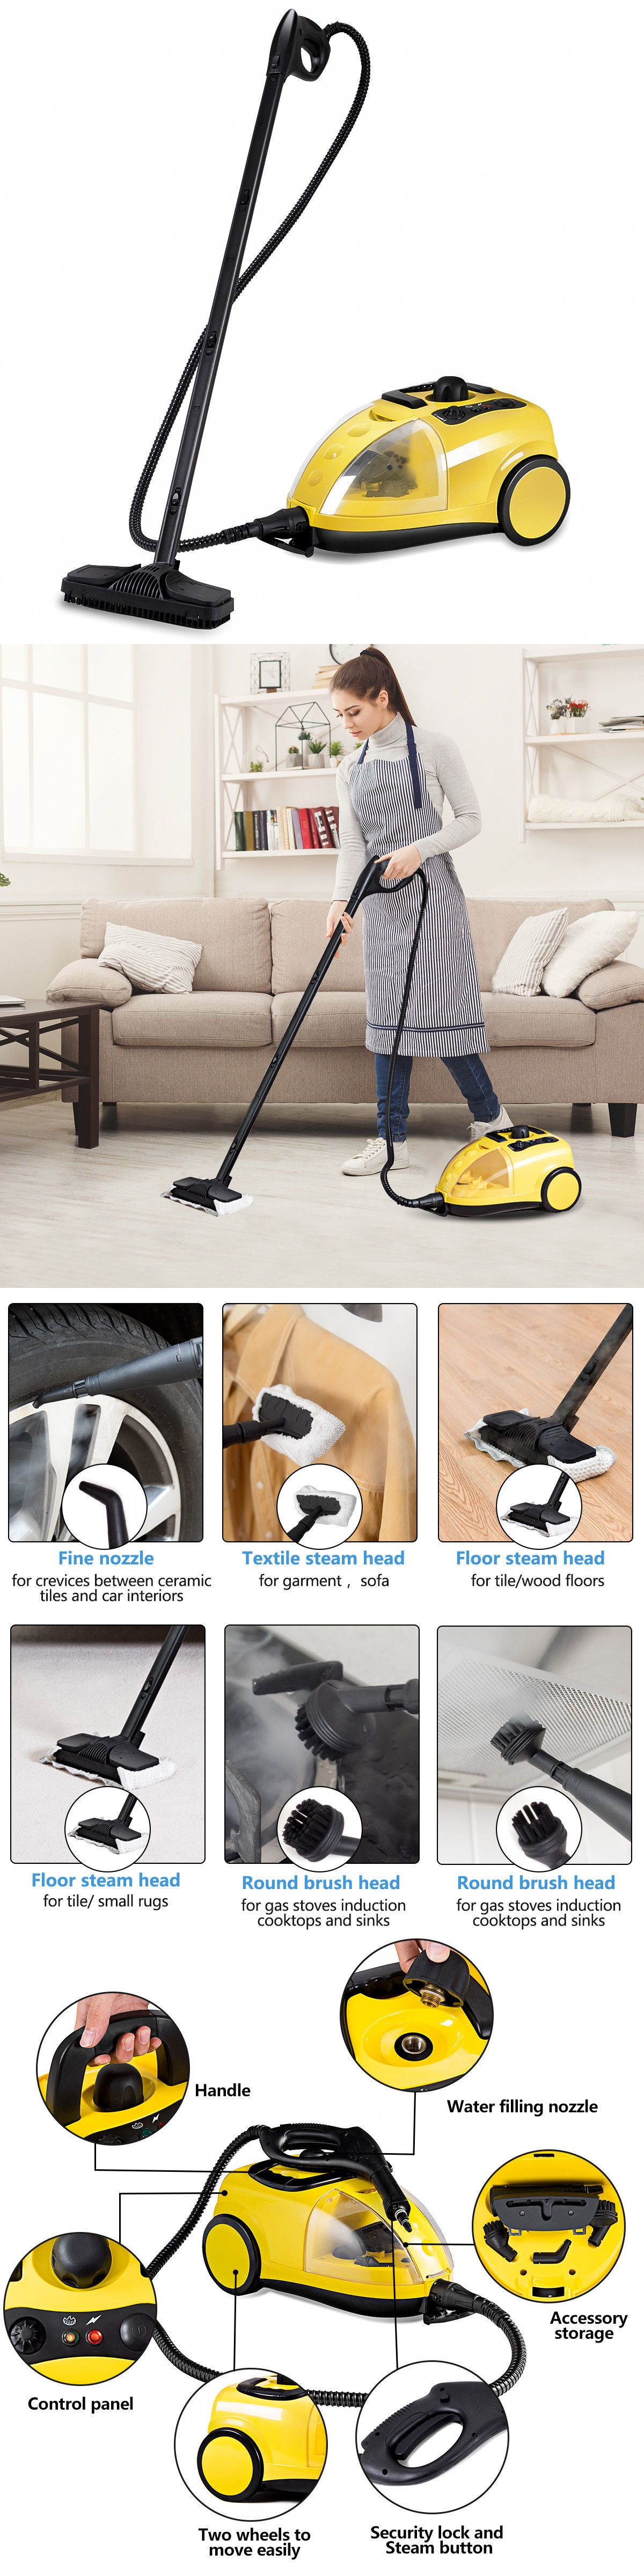 Details About 1500w Heavy Duty Steam Cleaner Mop Multi Purpose